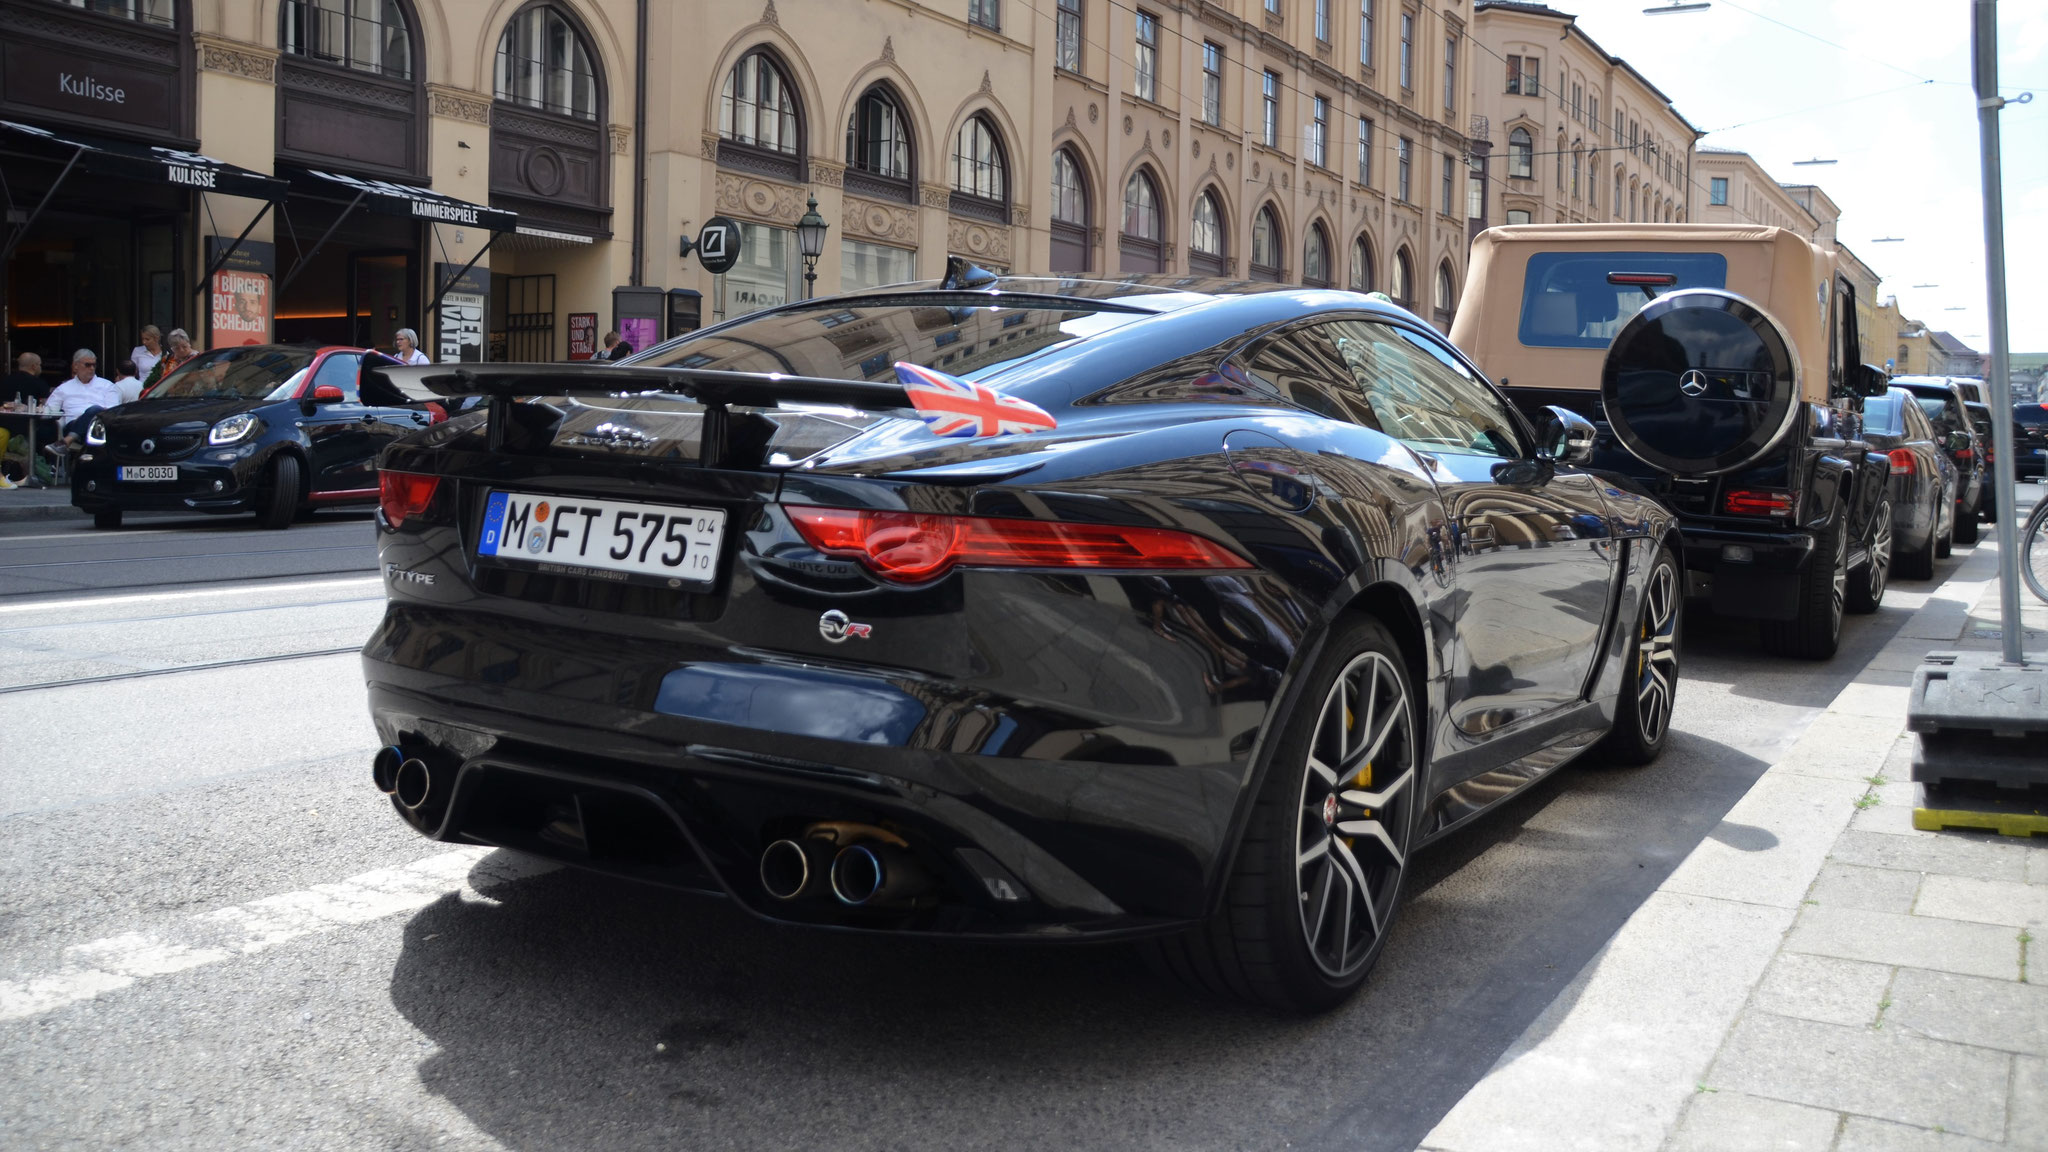 Jaguar F-Type SVR - M-FT-575